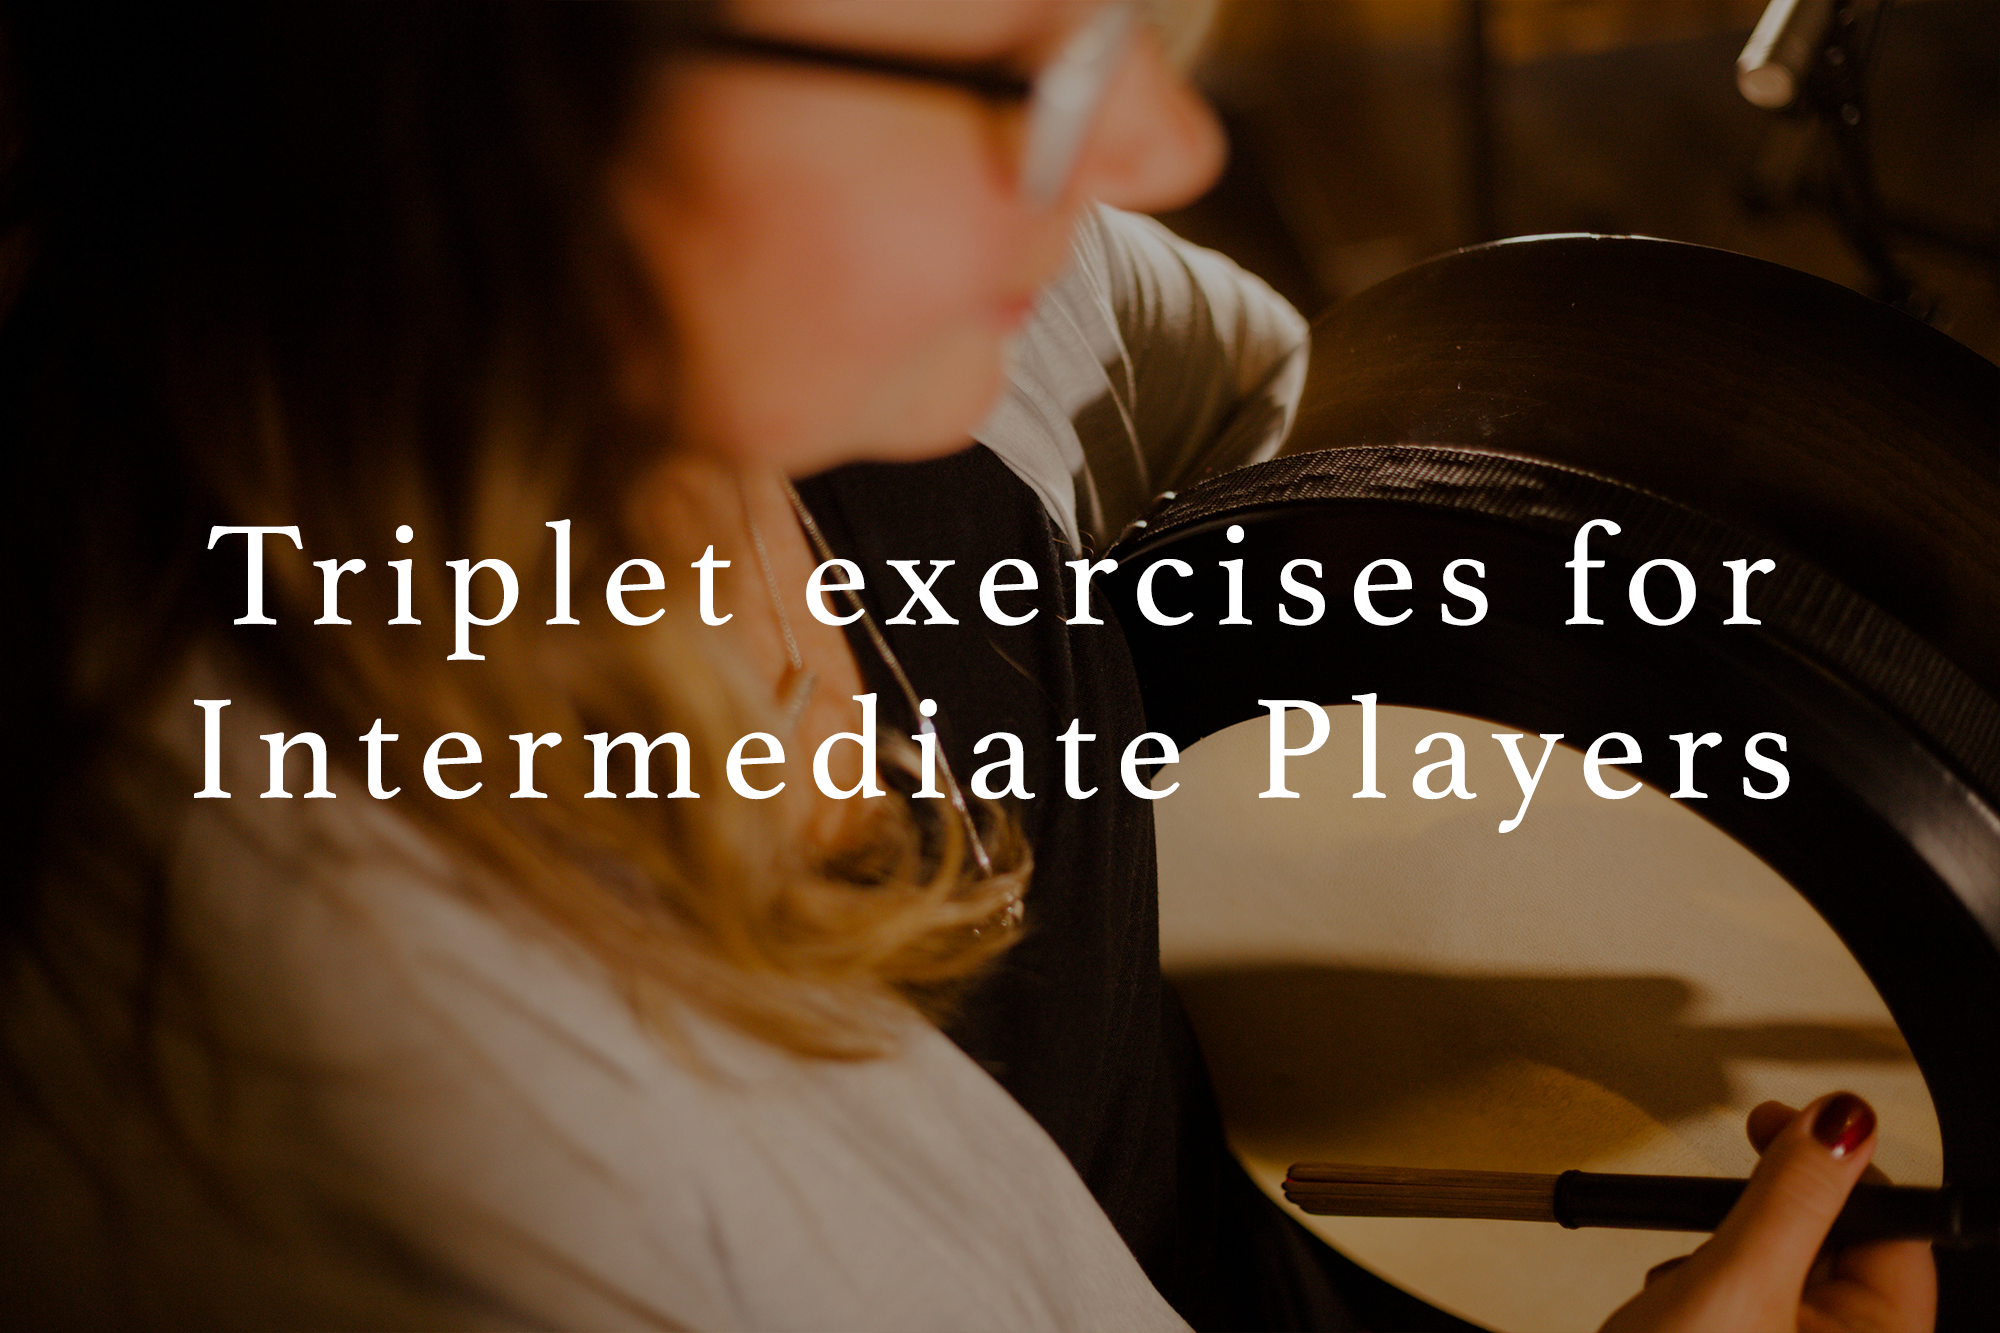 Triplet exercises for Intermediate Players